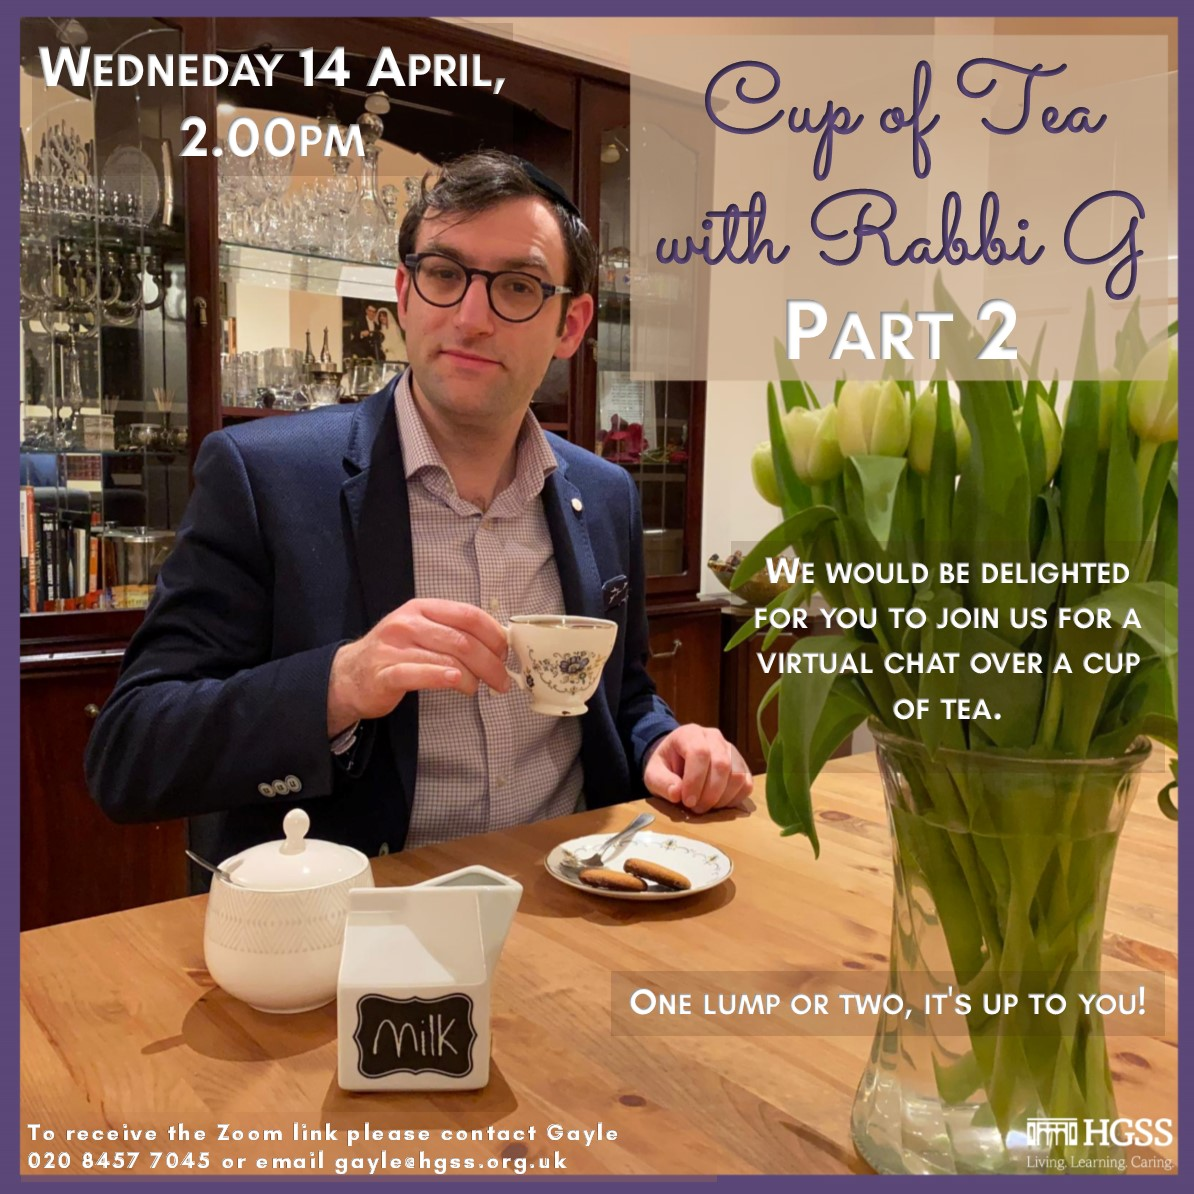 Cup of Tea with Rabbi G (Part 2) @ Zoom